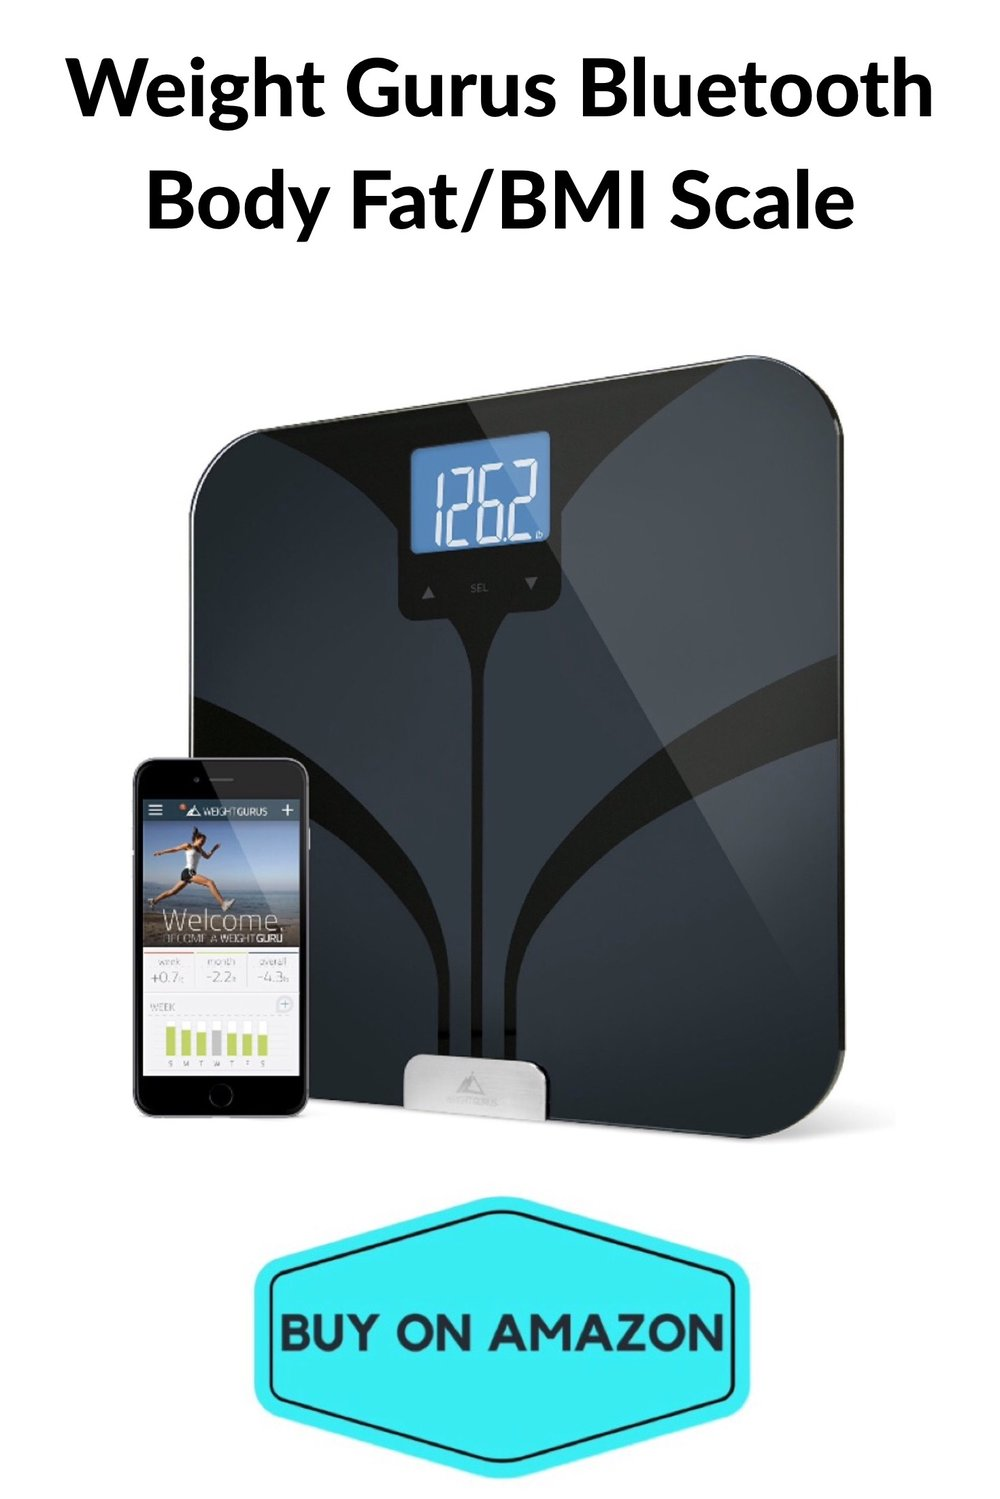 Weight Gurus Bluetooth Body Fat/BMI Scale